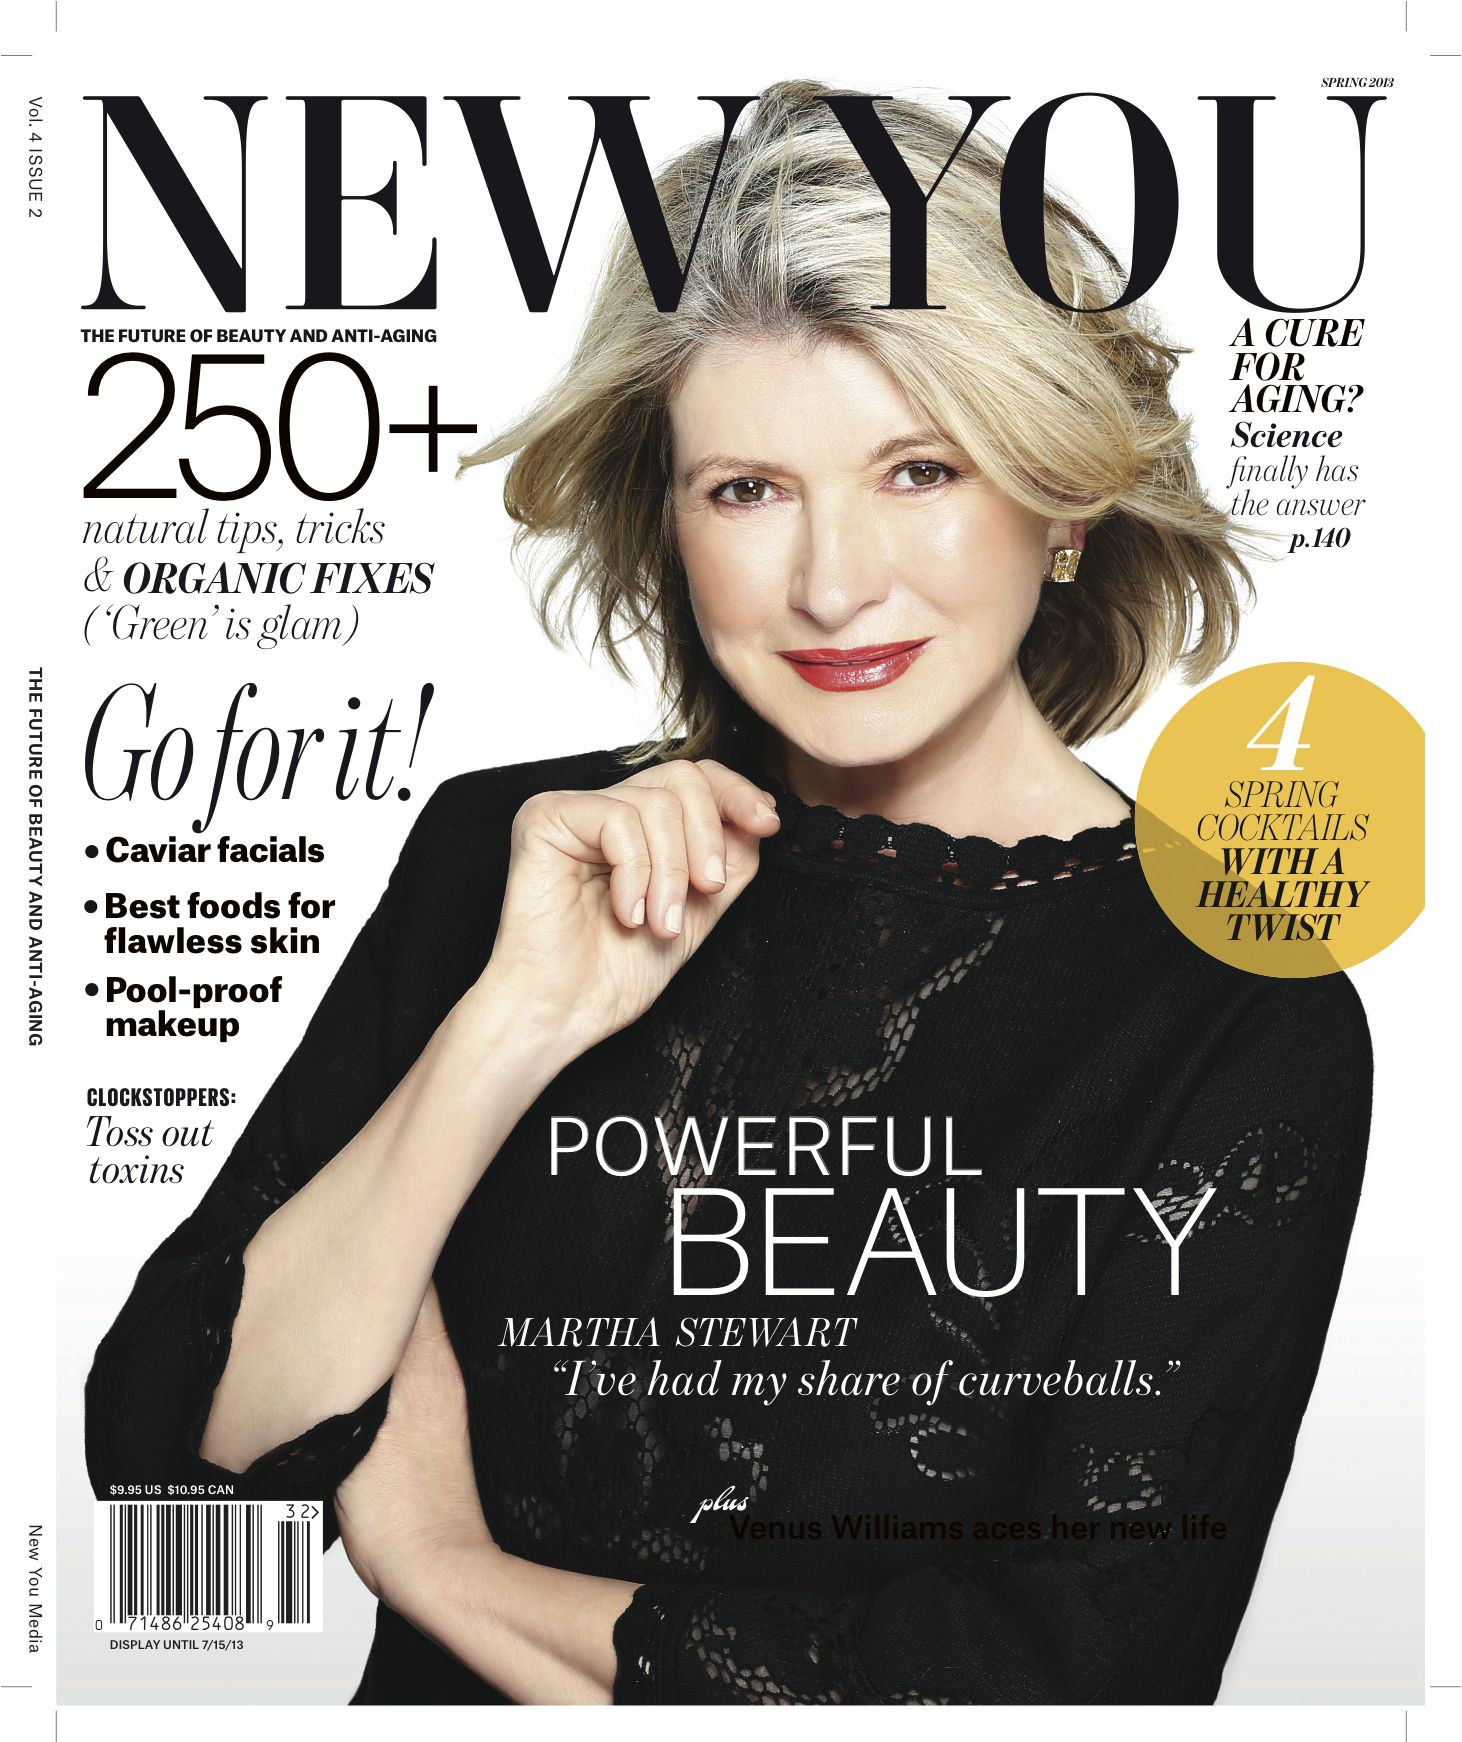 Our latest spring issue features the stunning 71-year old mogul, #MarthaStewart ! #natural issue #beautytips The latest on #lasers. Visit newyou.com to find out where to buy!